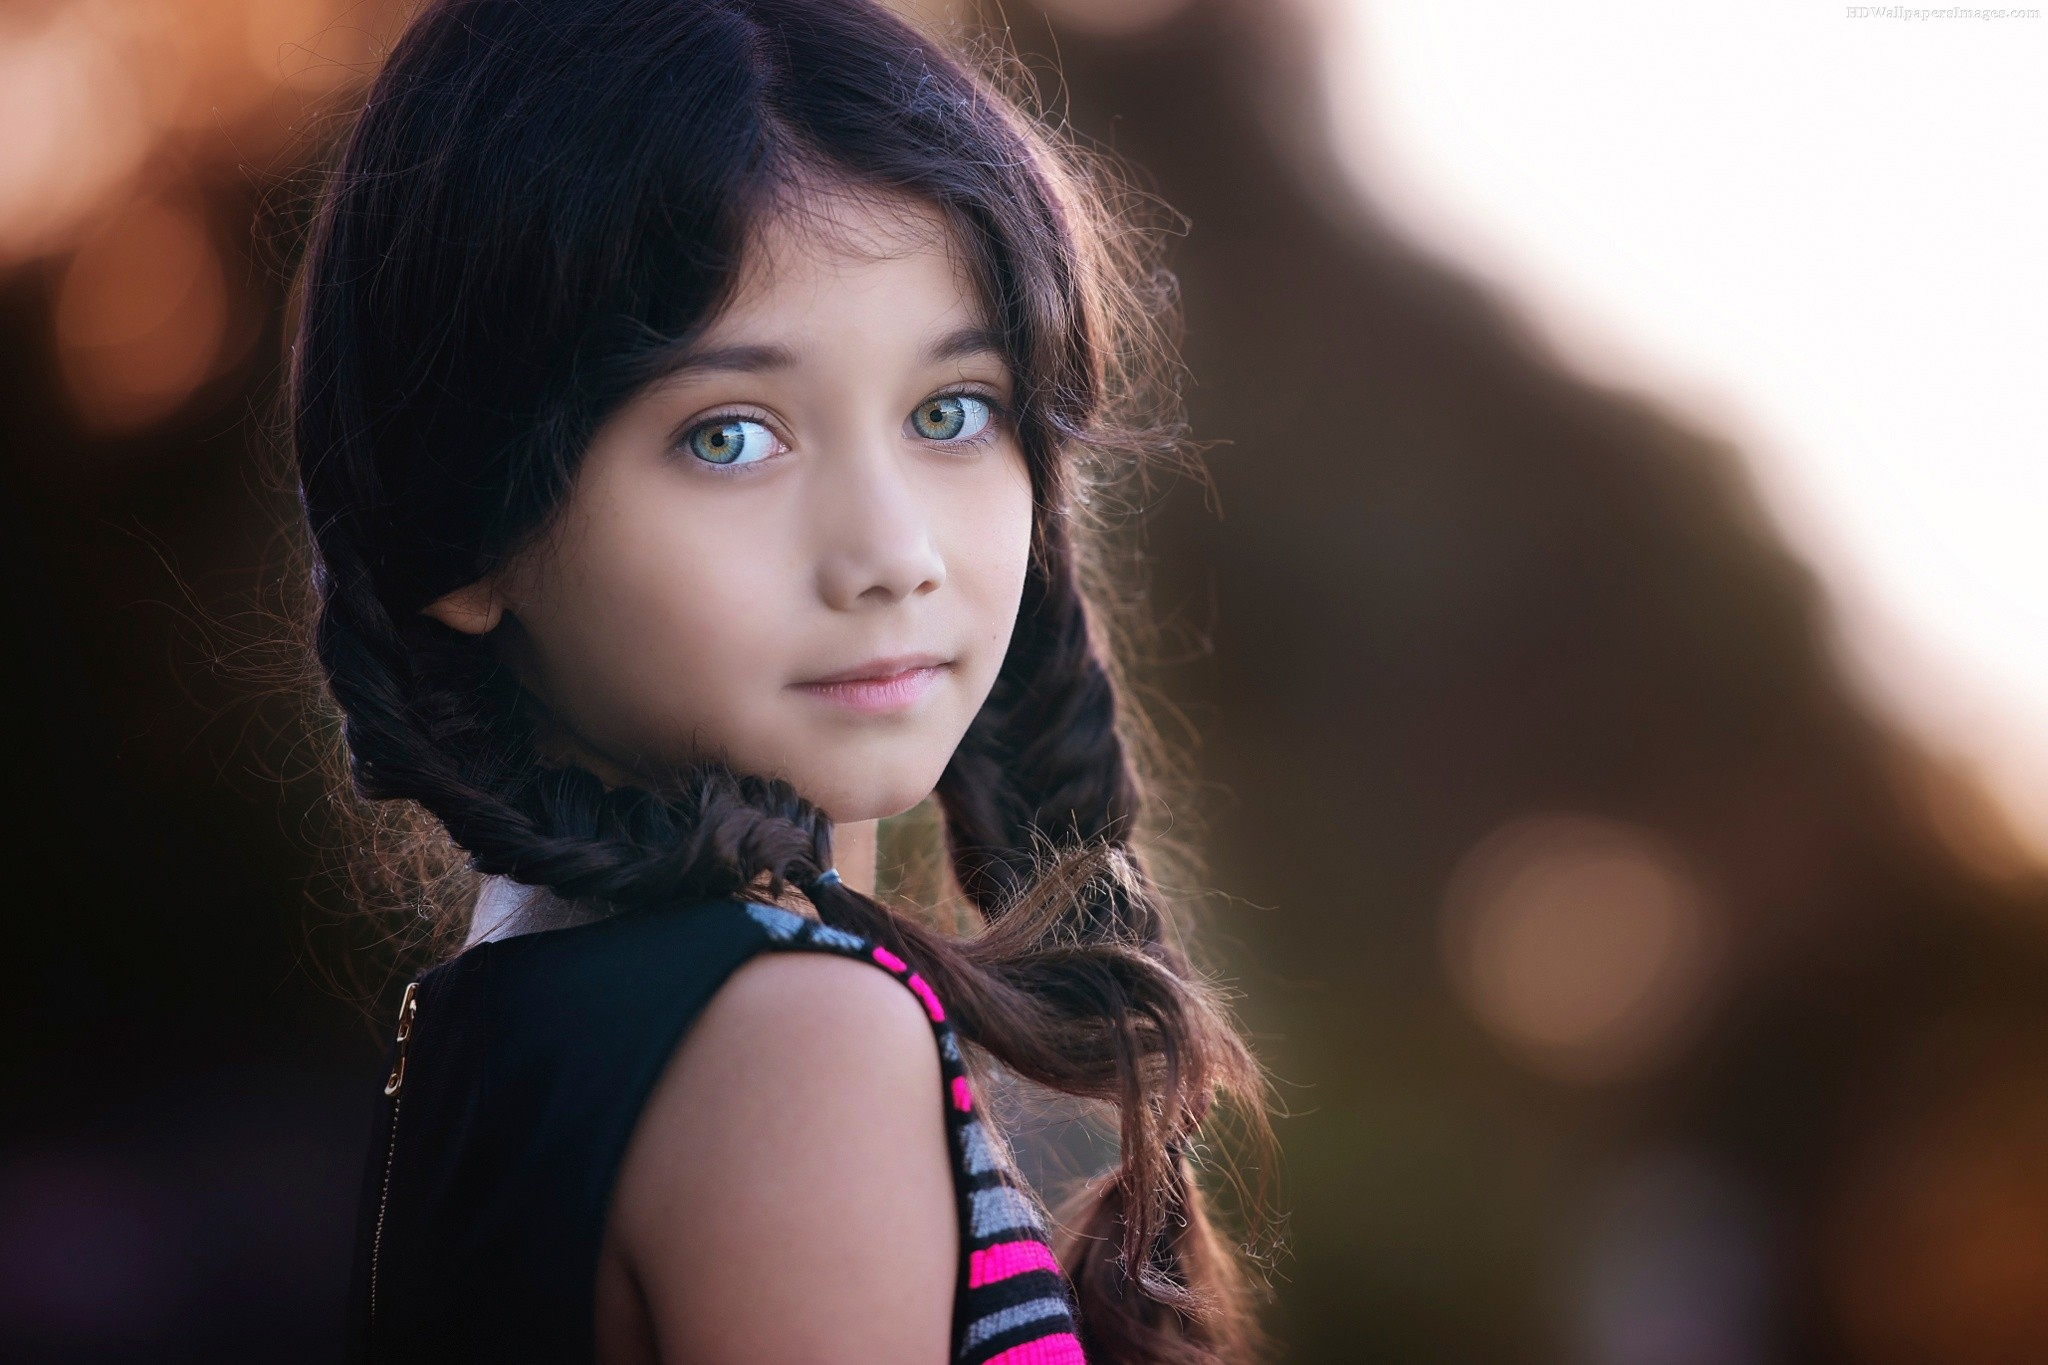 Cute Little Girl Hairstyle And Big Blue Eyes Wallpaper ...